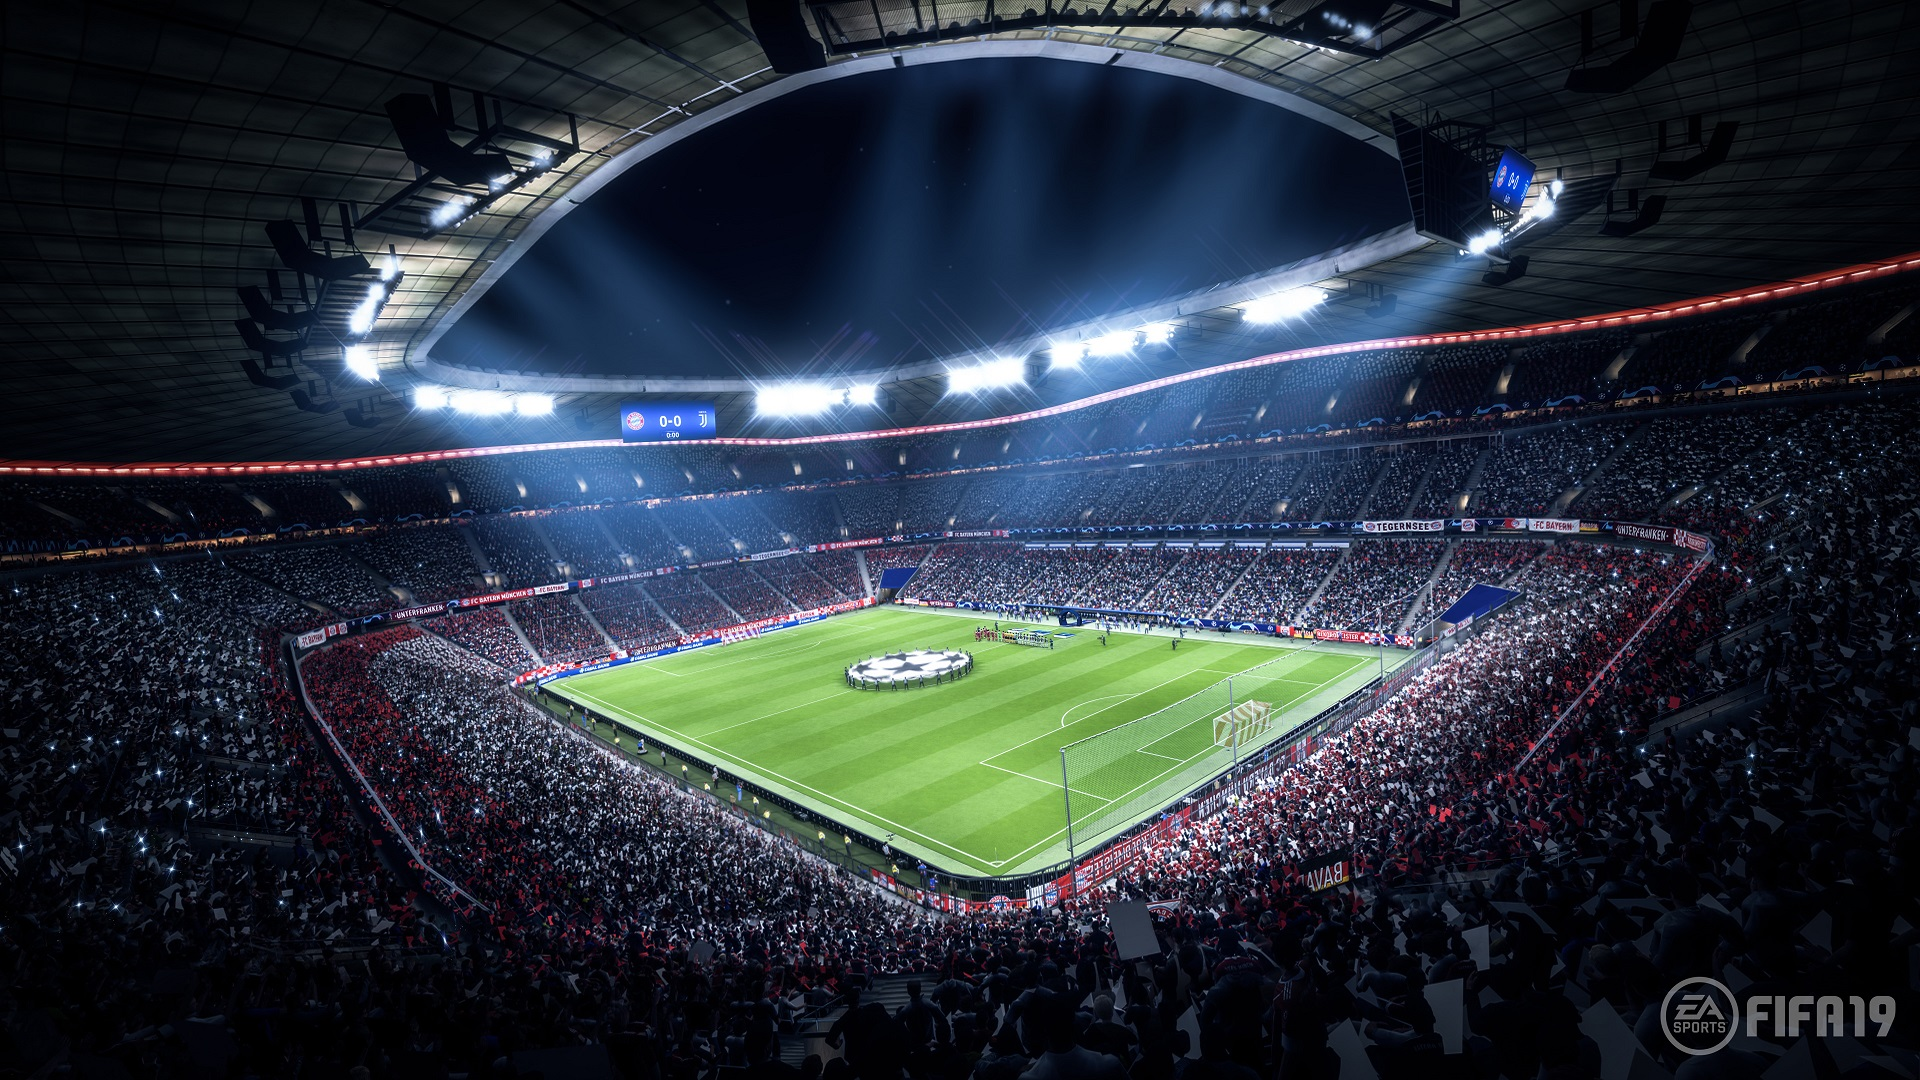 Download Fifa 19 Wallpapers 1920x1080 Read Games Review Play